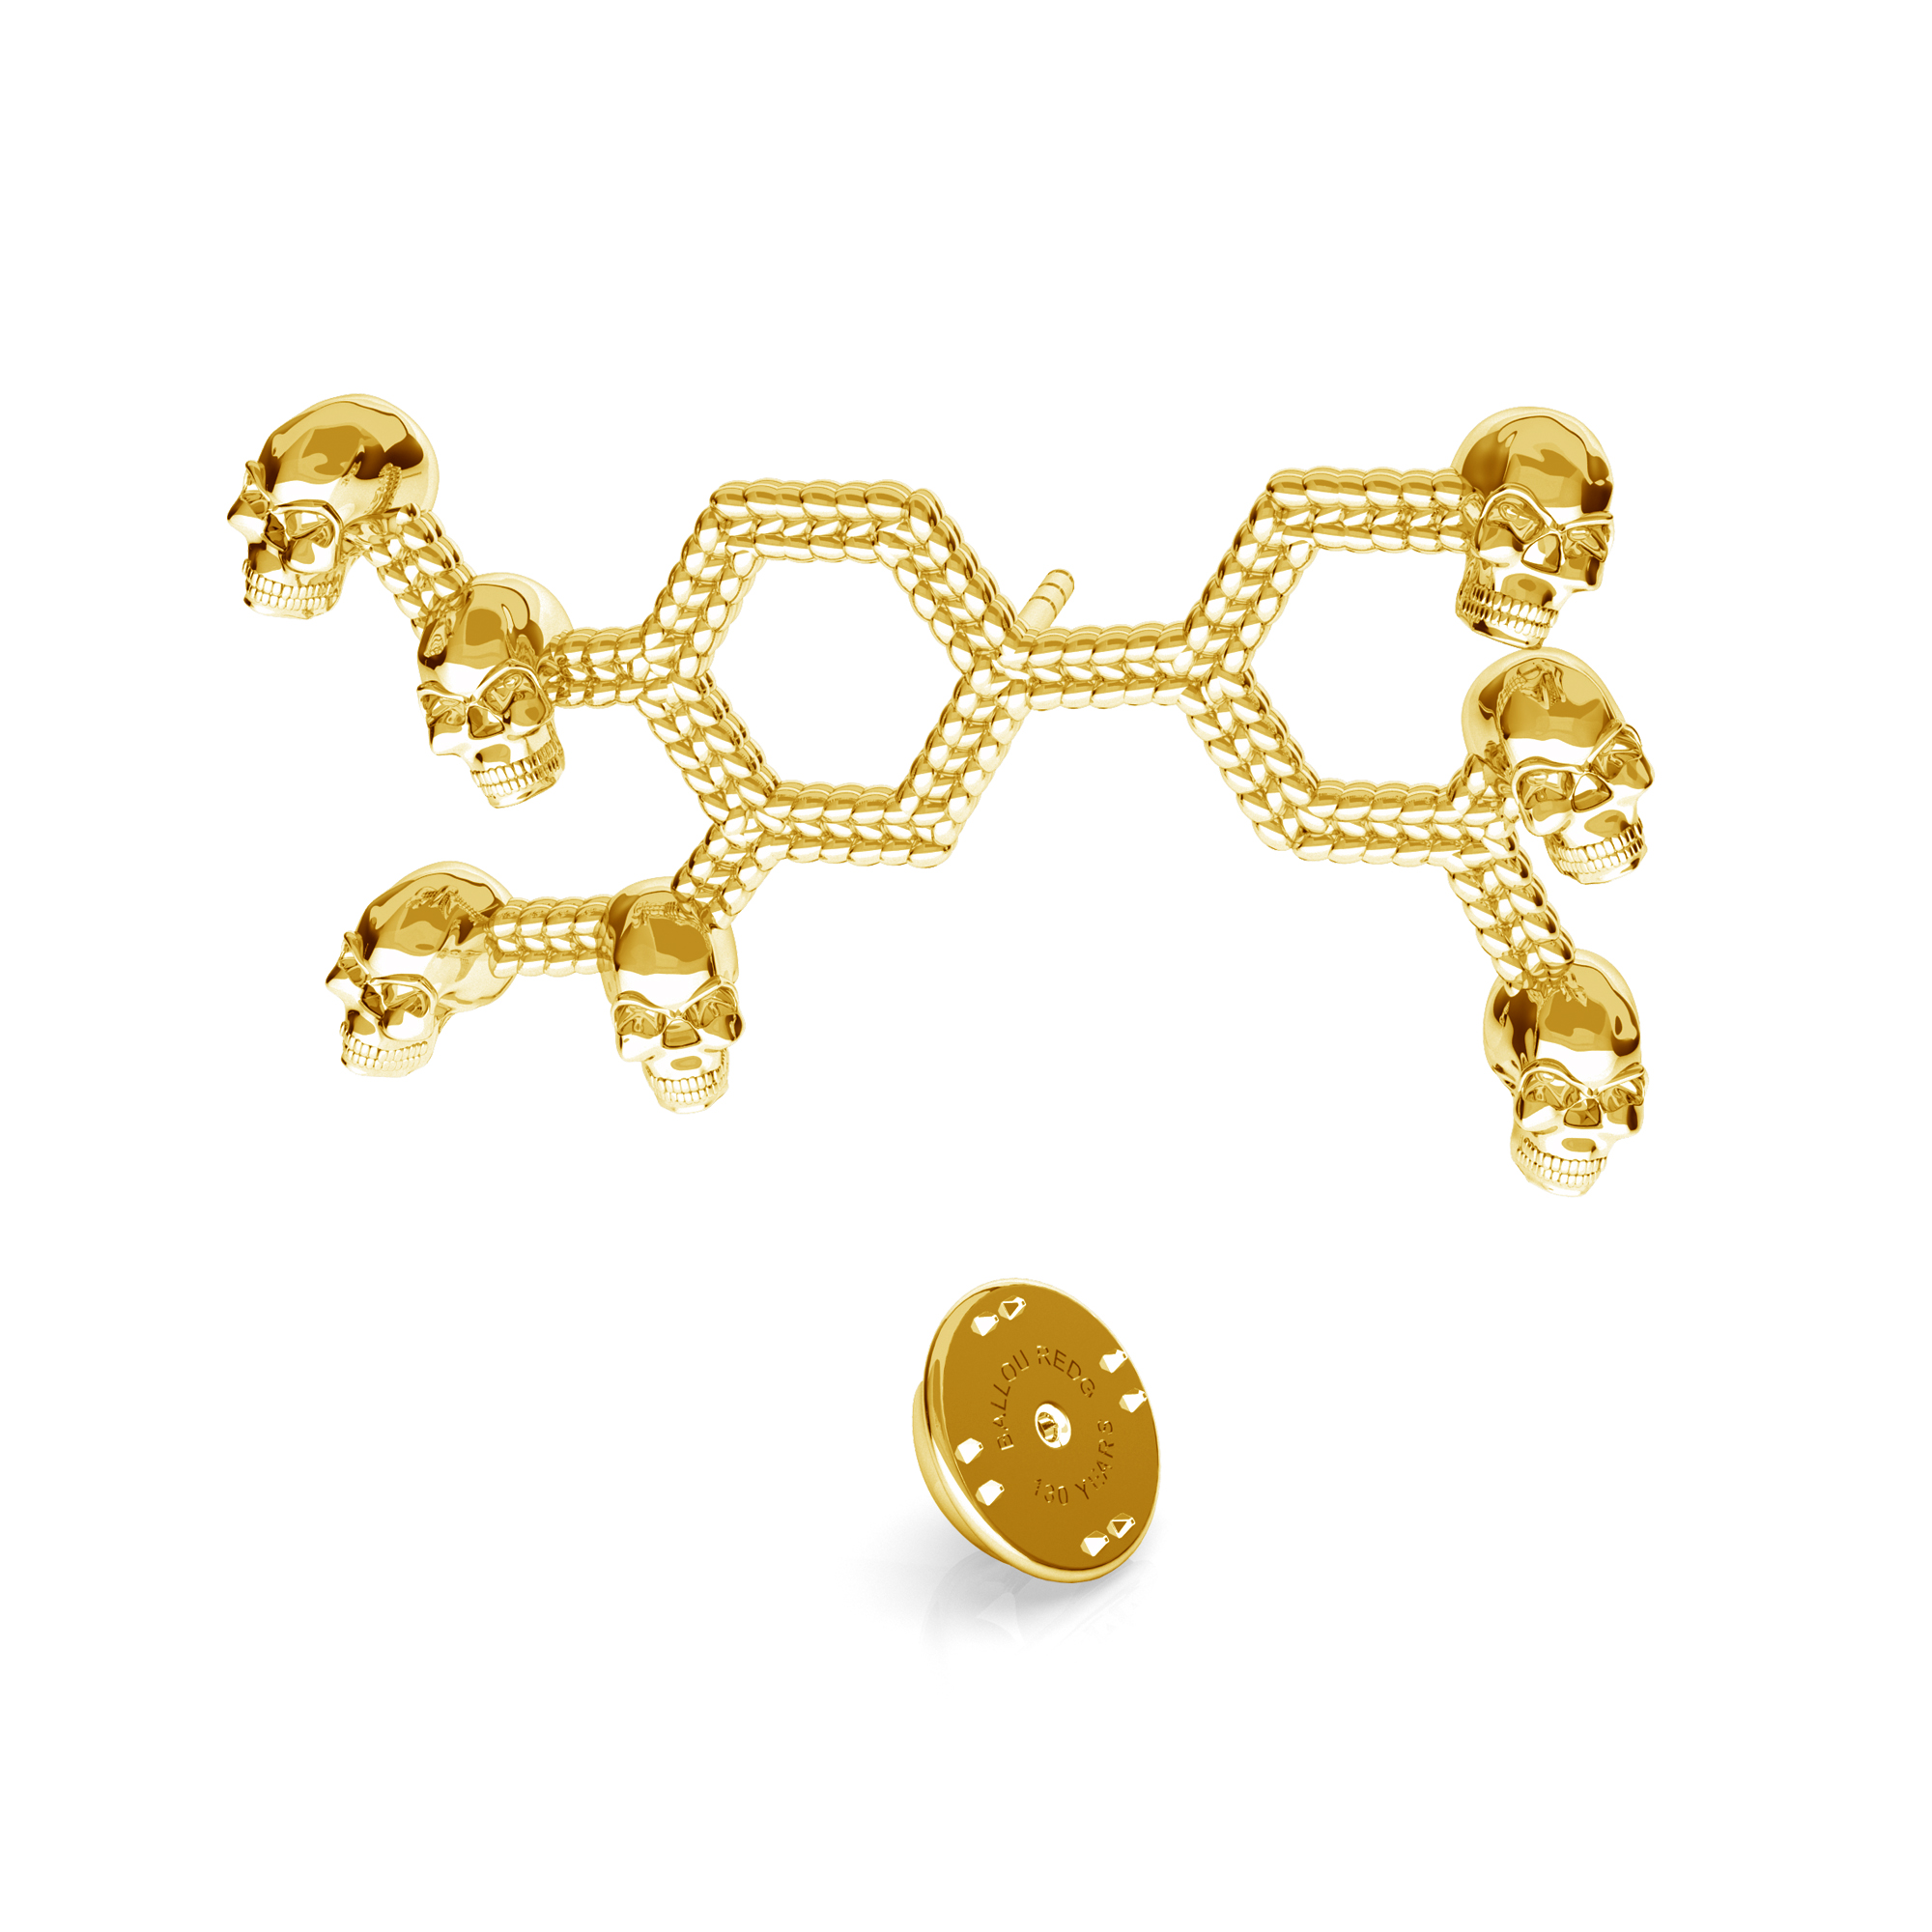 TESTOSTERONE CHEMICAL FOMULE LAPEL PIN 925